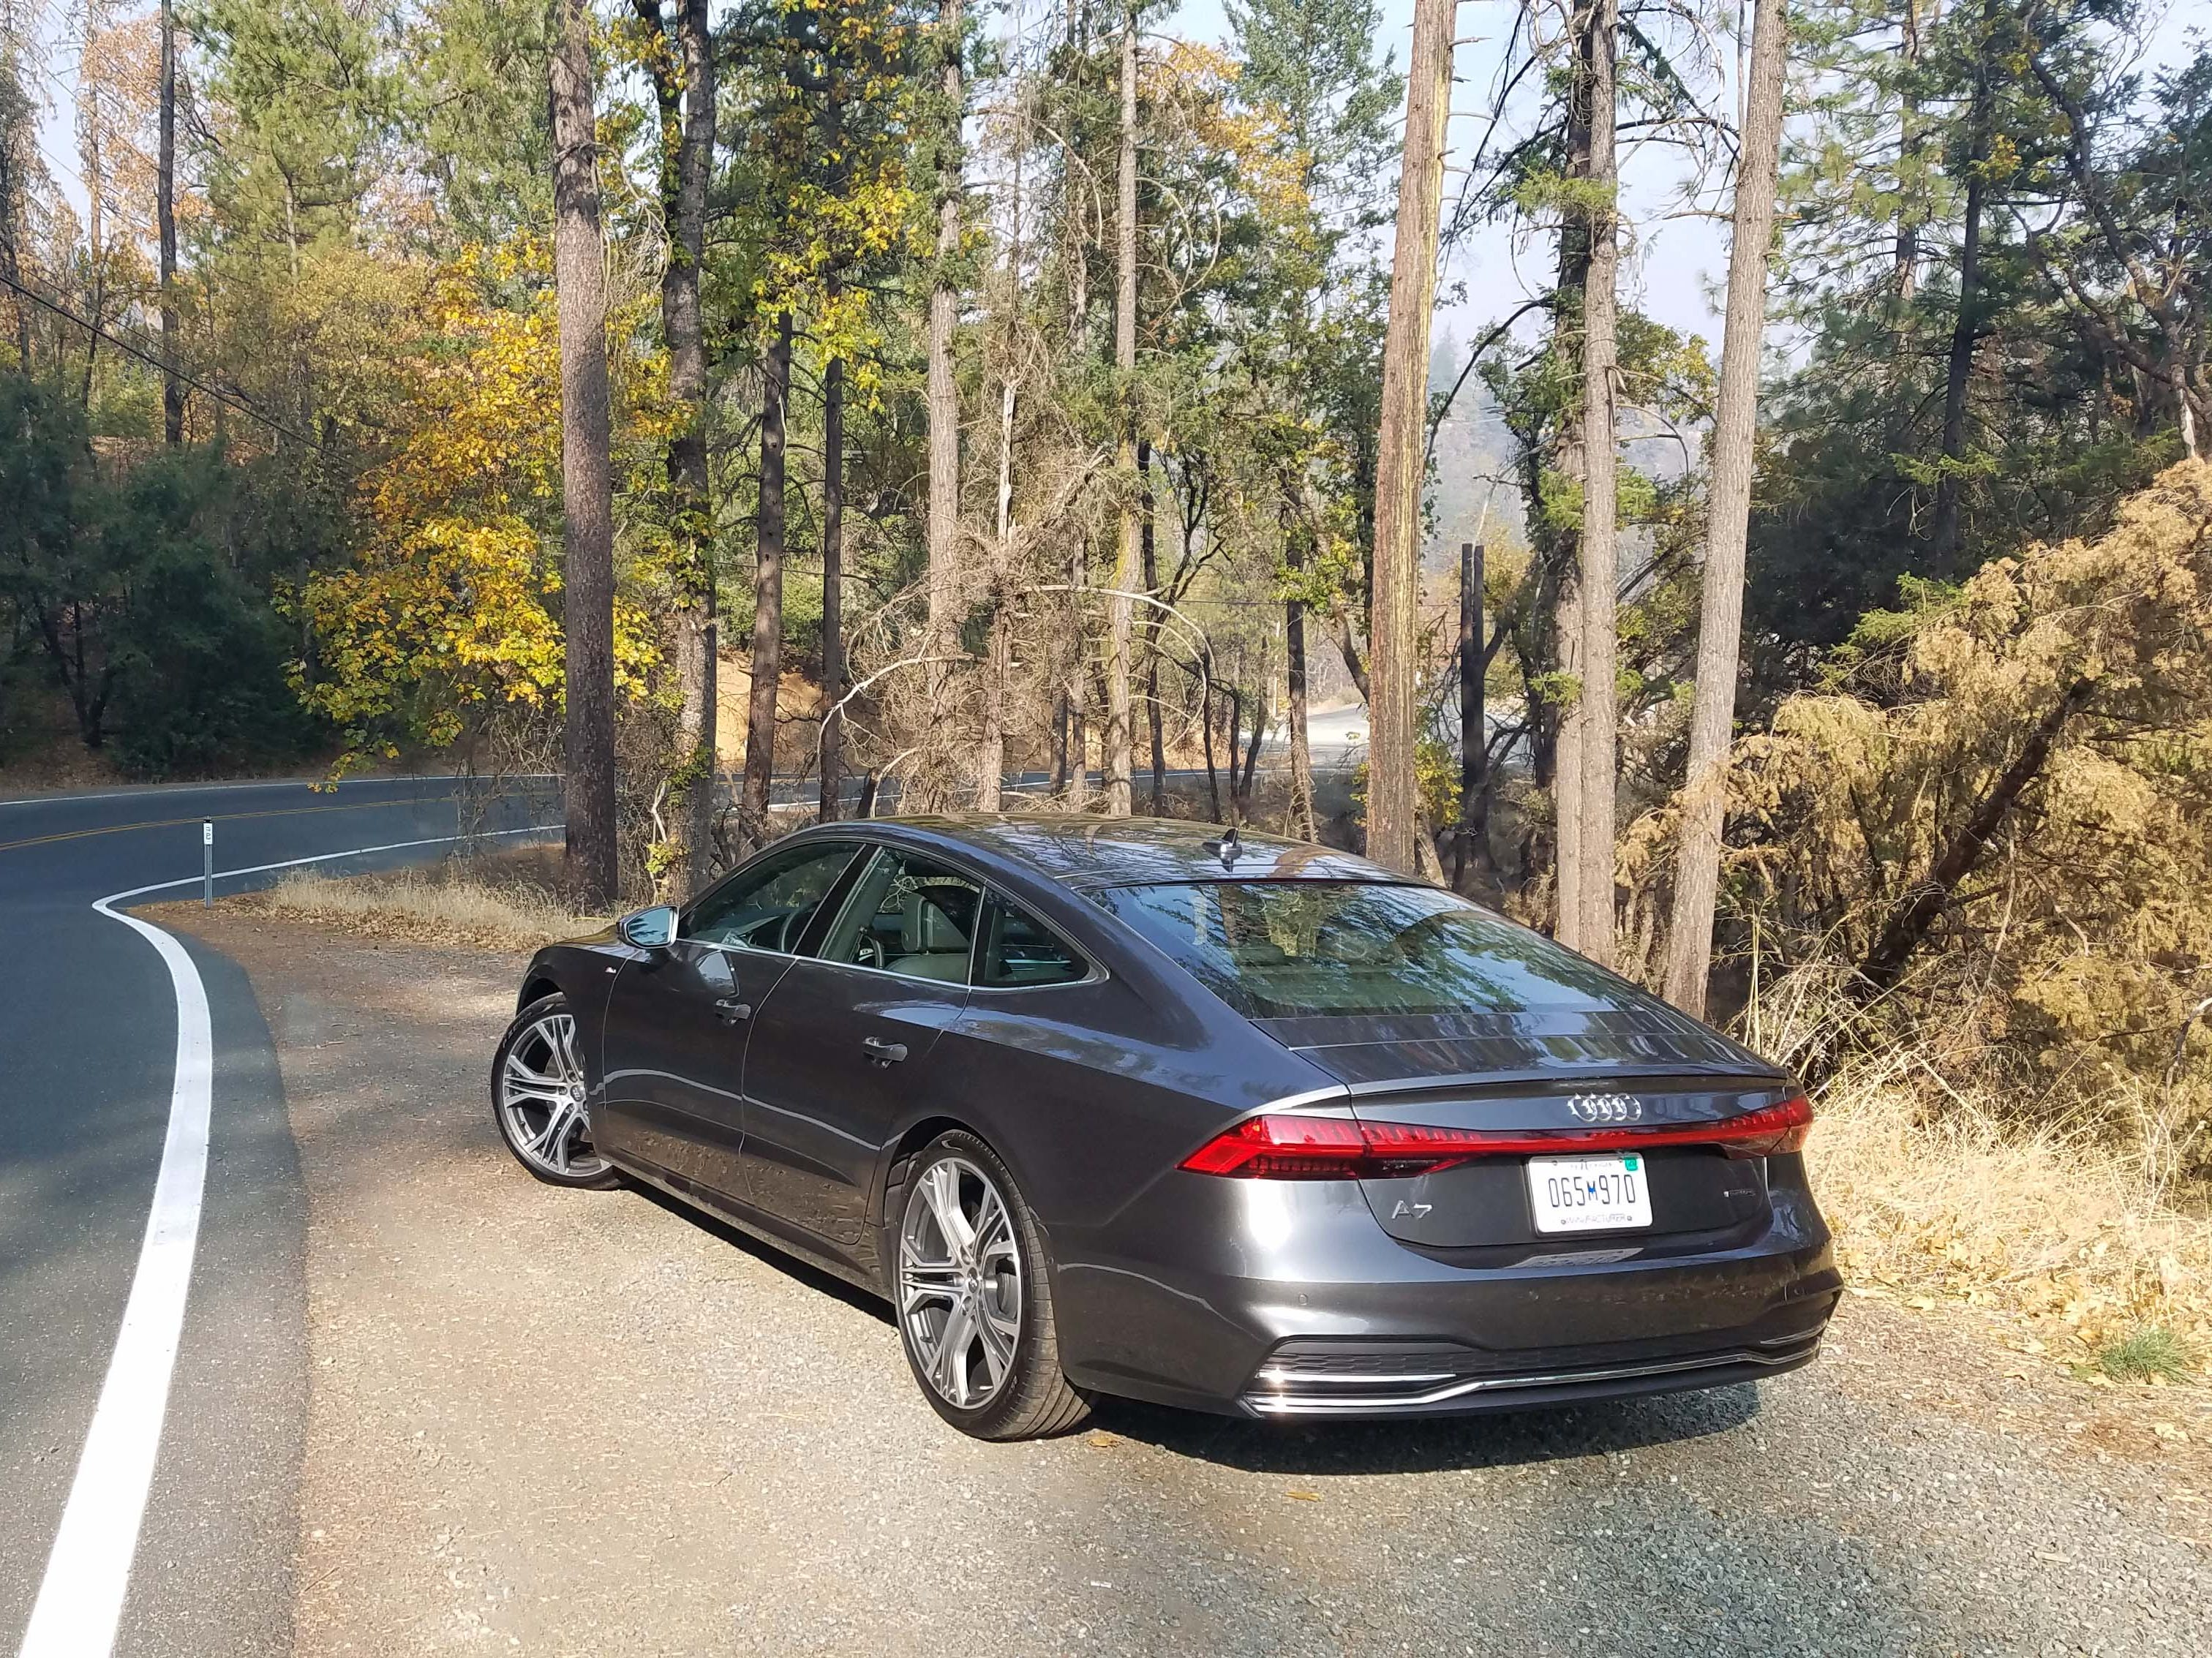 Though its dimensions are largely unchanged from Gen 1.0, the new 2019 Audi A7 has a stiffened chassis and improved suspension for excellent handling in the twisties.